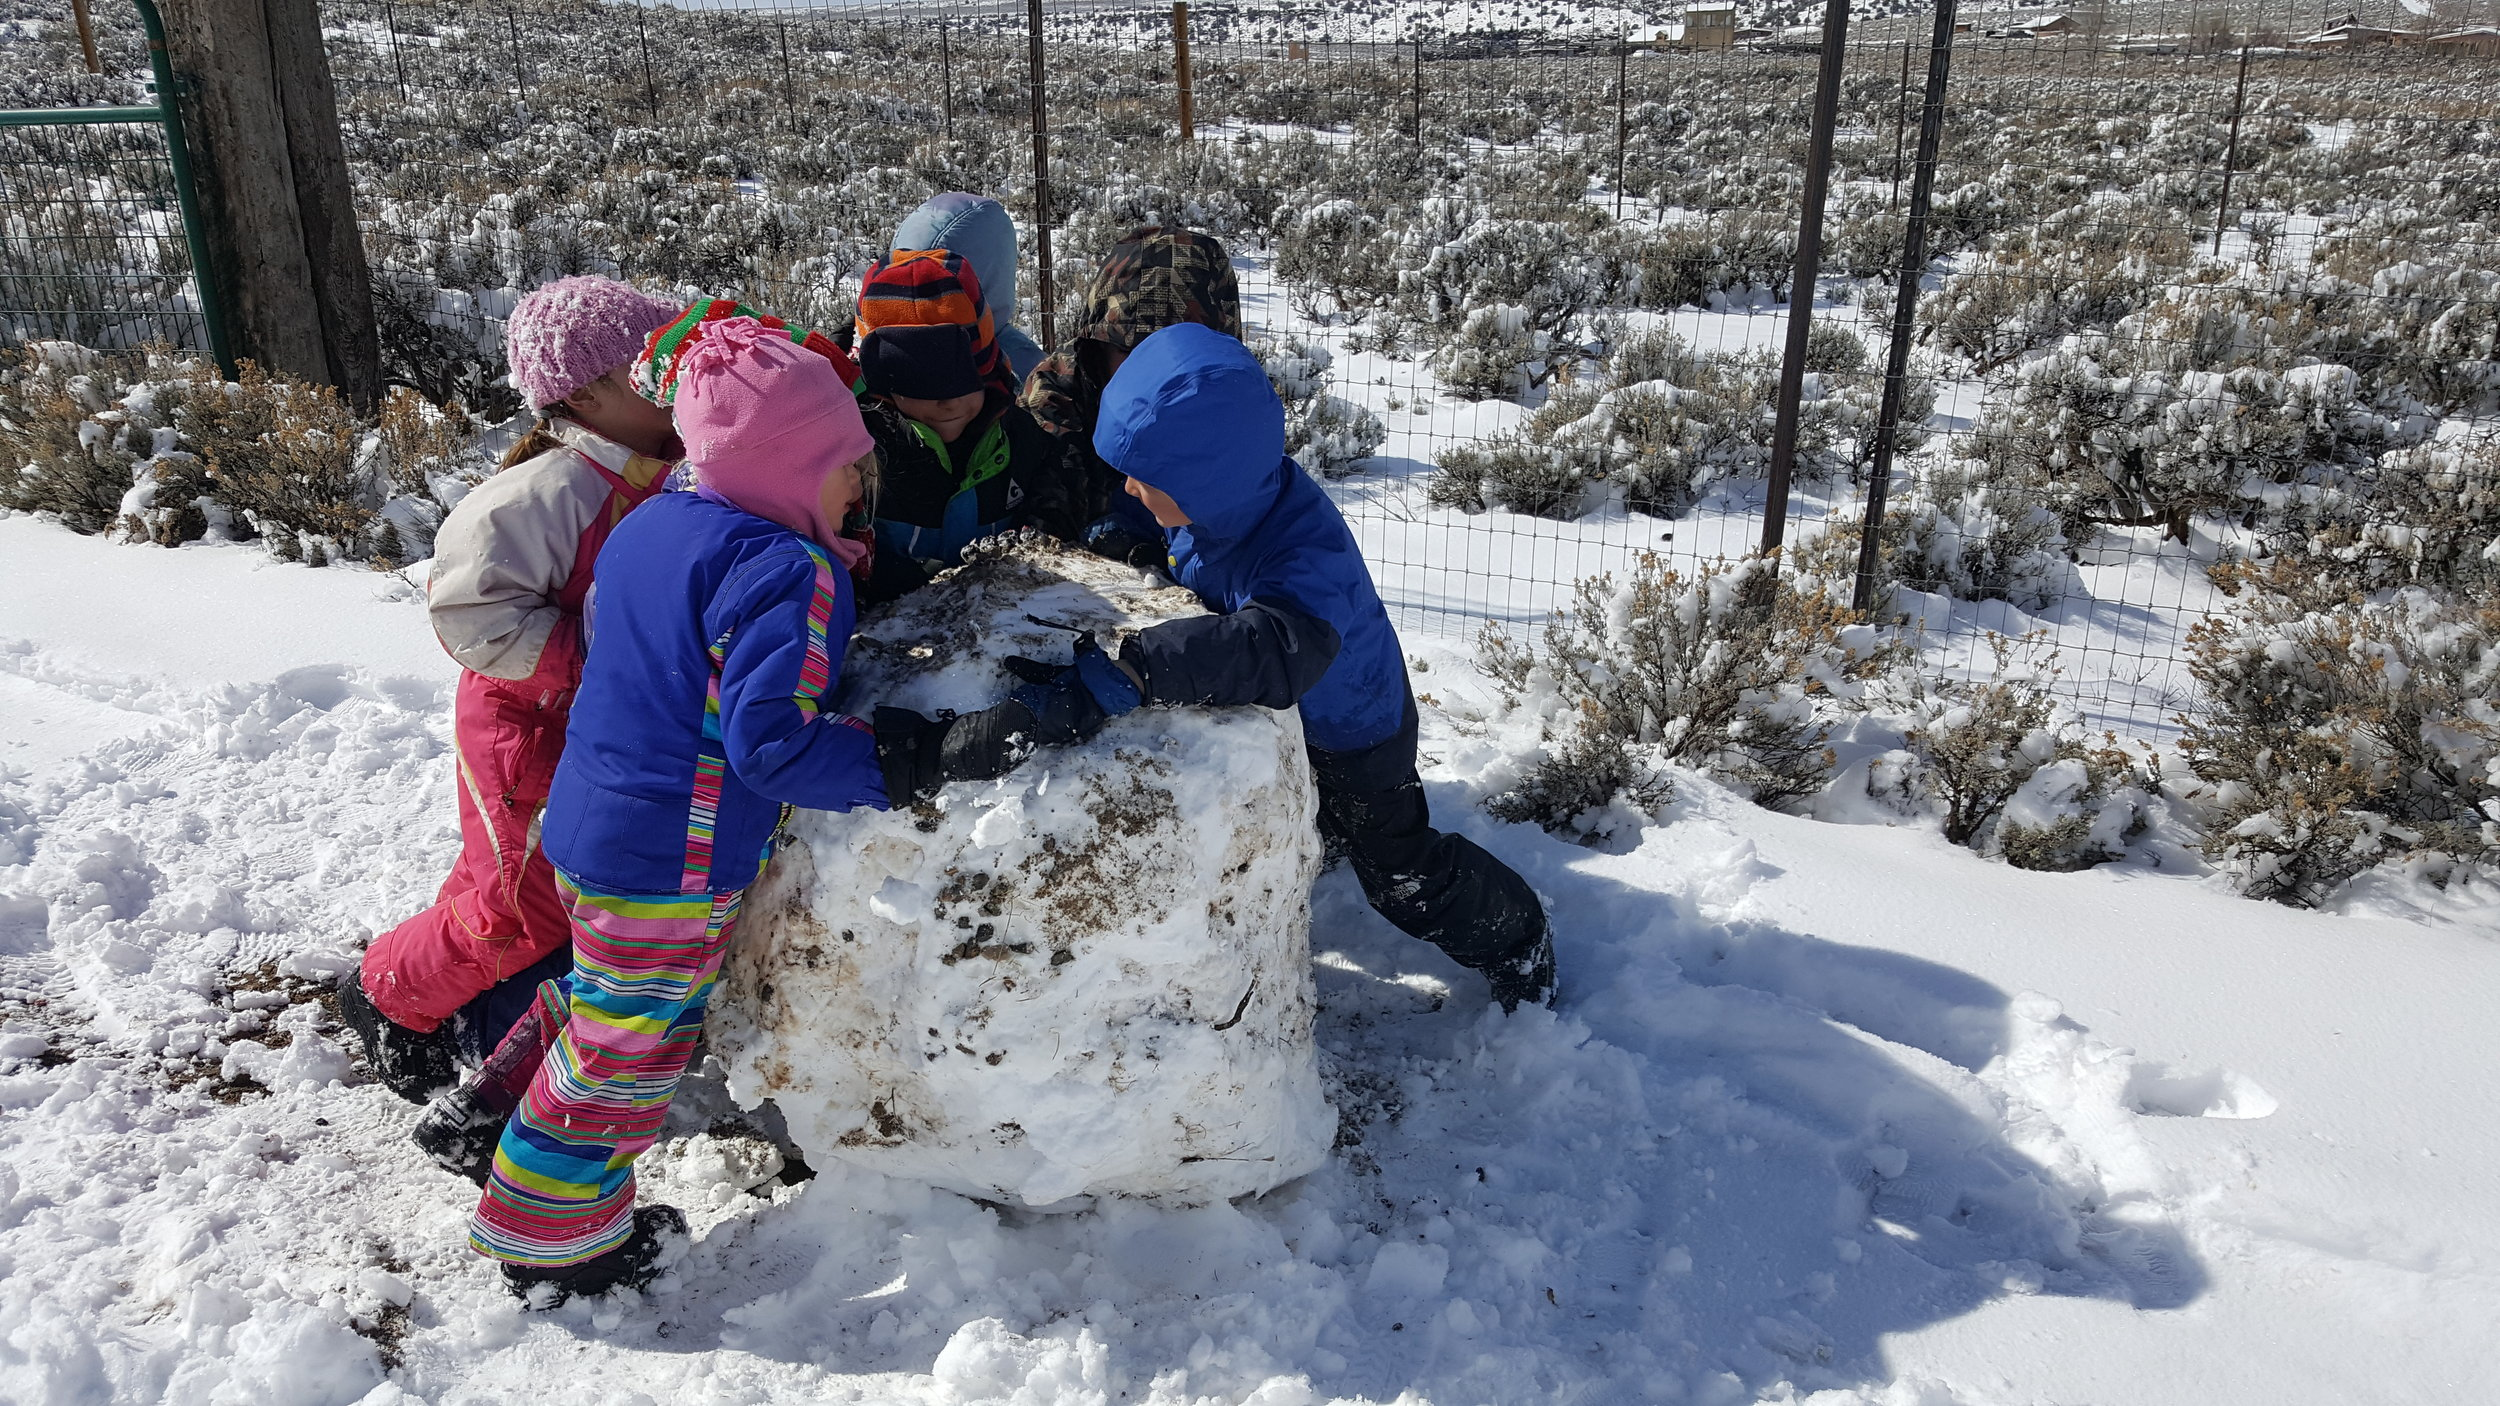 The kids had so much fun (and learning) making this giant snowball. Pushing, pulling, working together, on the sled, off the sled, in the sage, out of the sage. They stuck with it for nearly half an hour, a true education in the making. So proud of these kids.